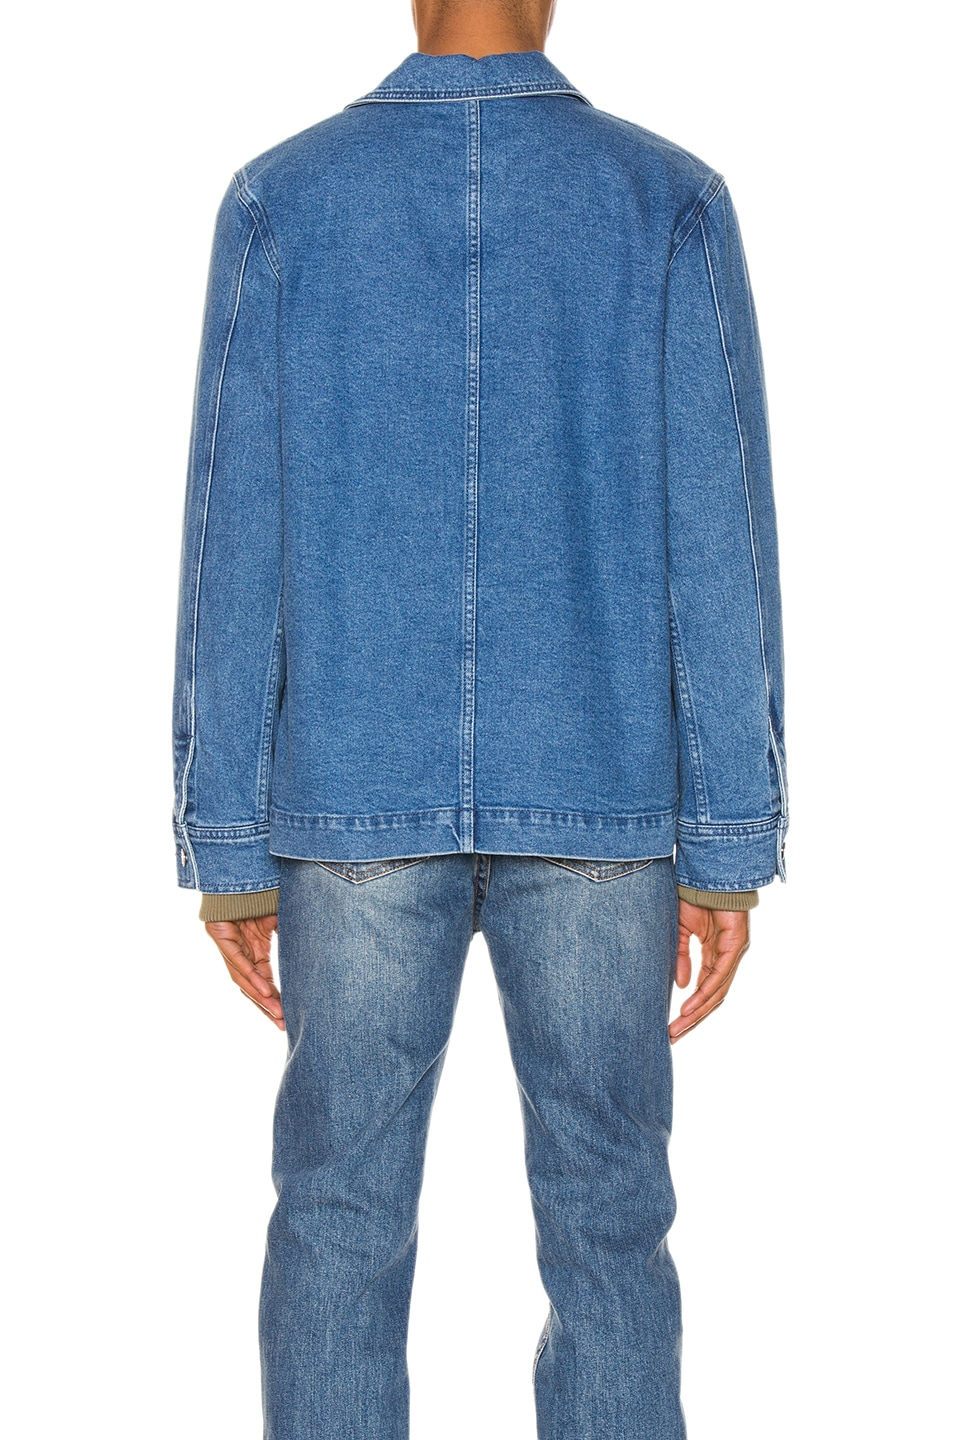 Image 4 of A.P.C. x Brain Dead Imhotep Jacket in Indigo Delave